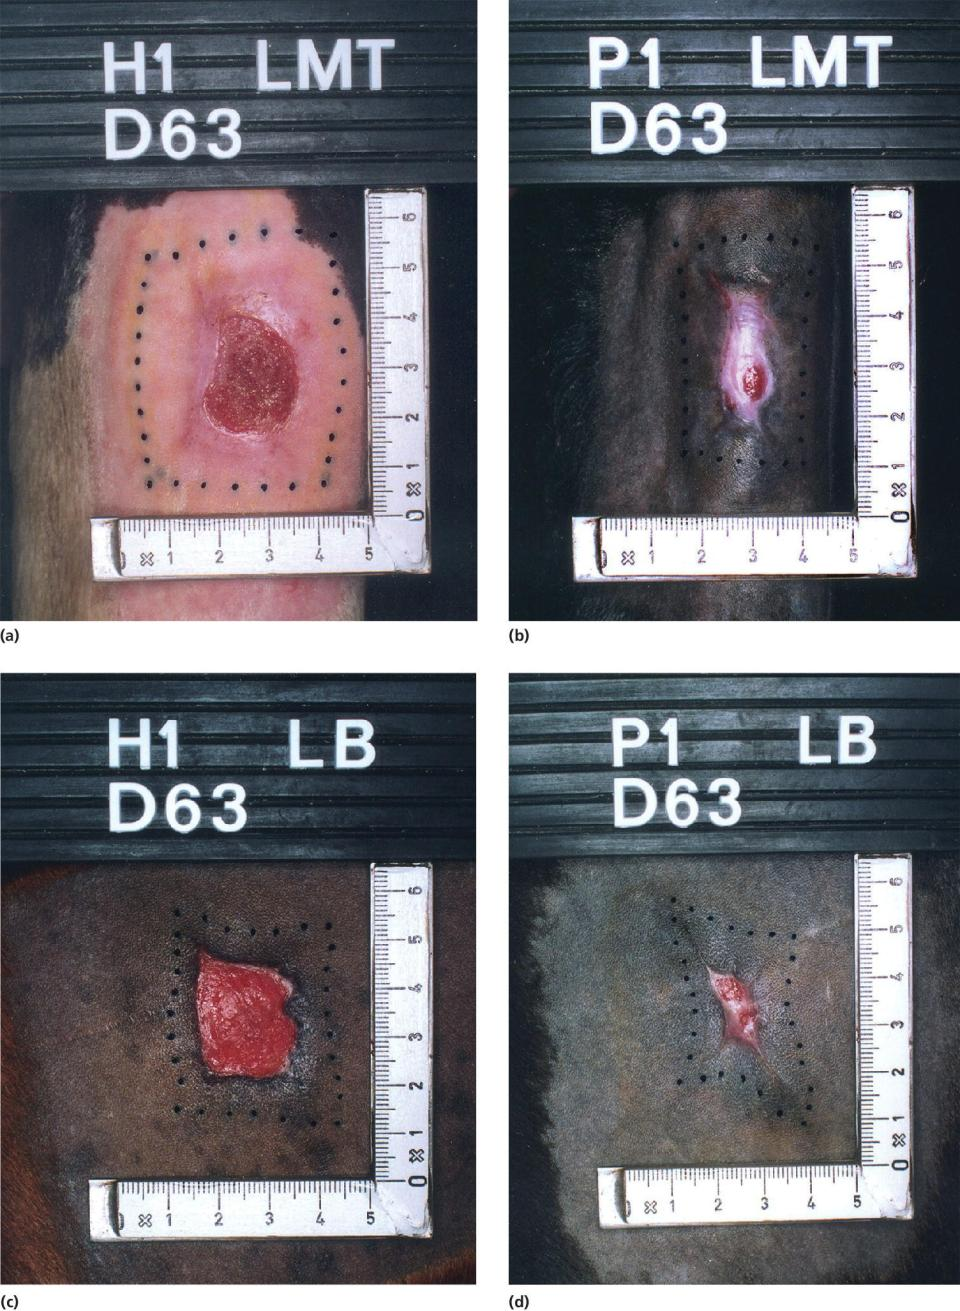 4 Photos displaying the metatarsal wound of horse decreased in size, closure of the metatarsal wound of pony, buttock wound of horse healed by contraction, and buttock wound of pony damaged while shaving the hairs.